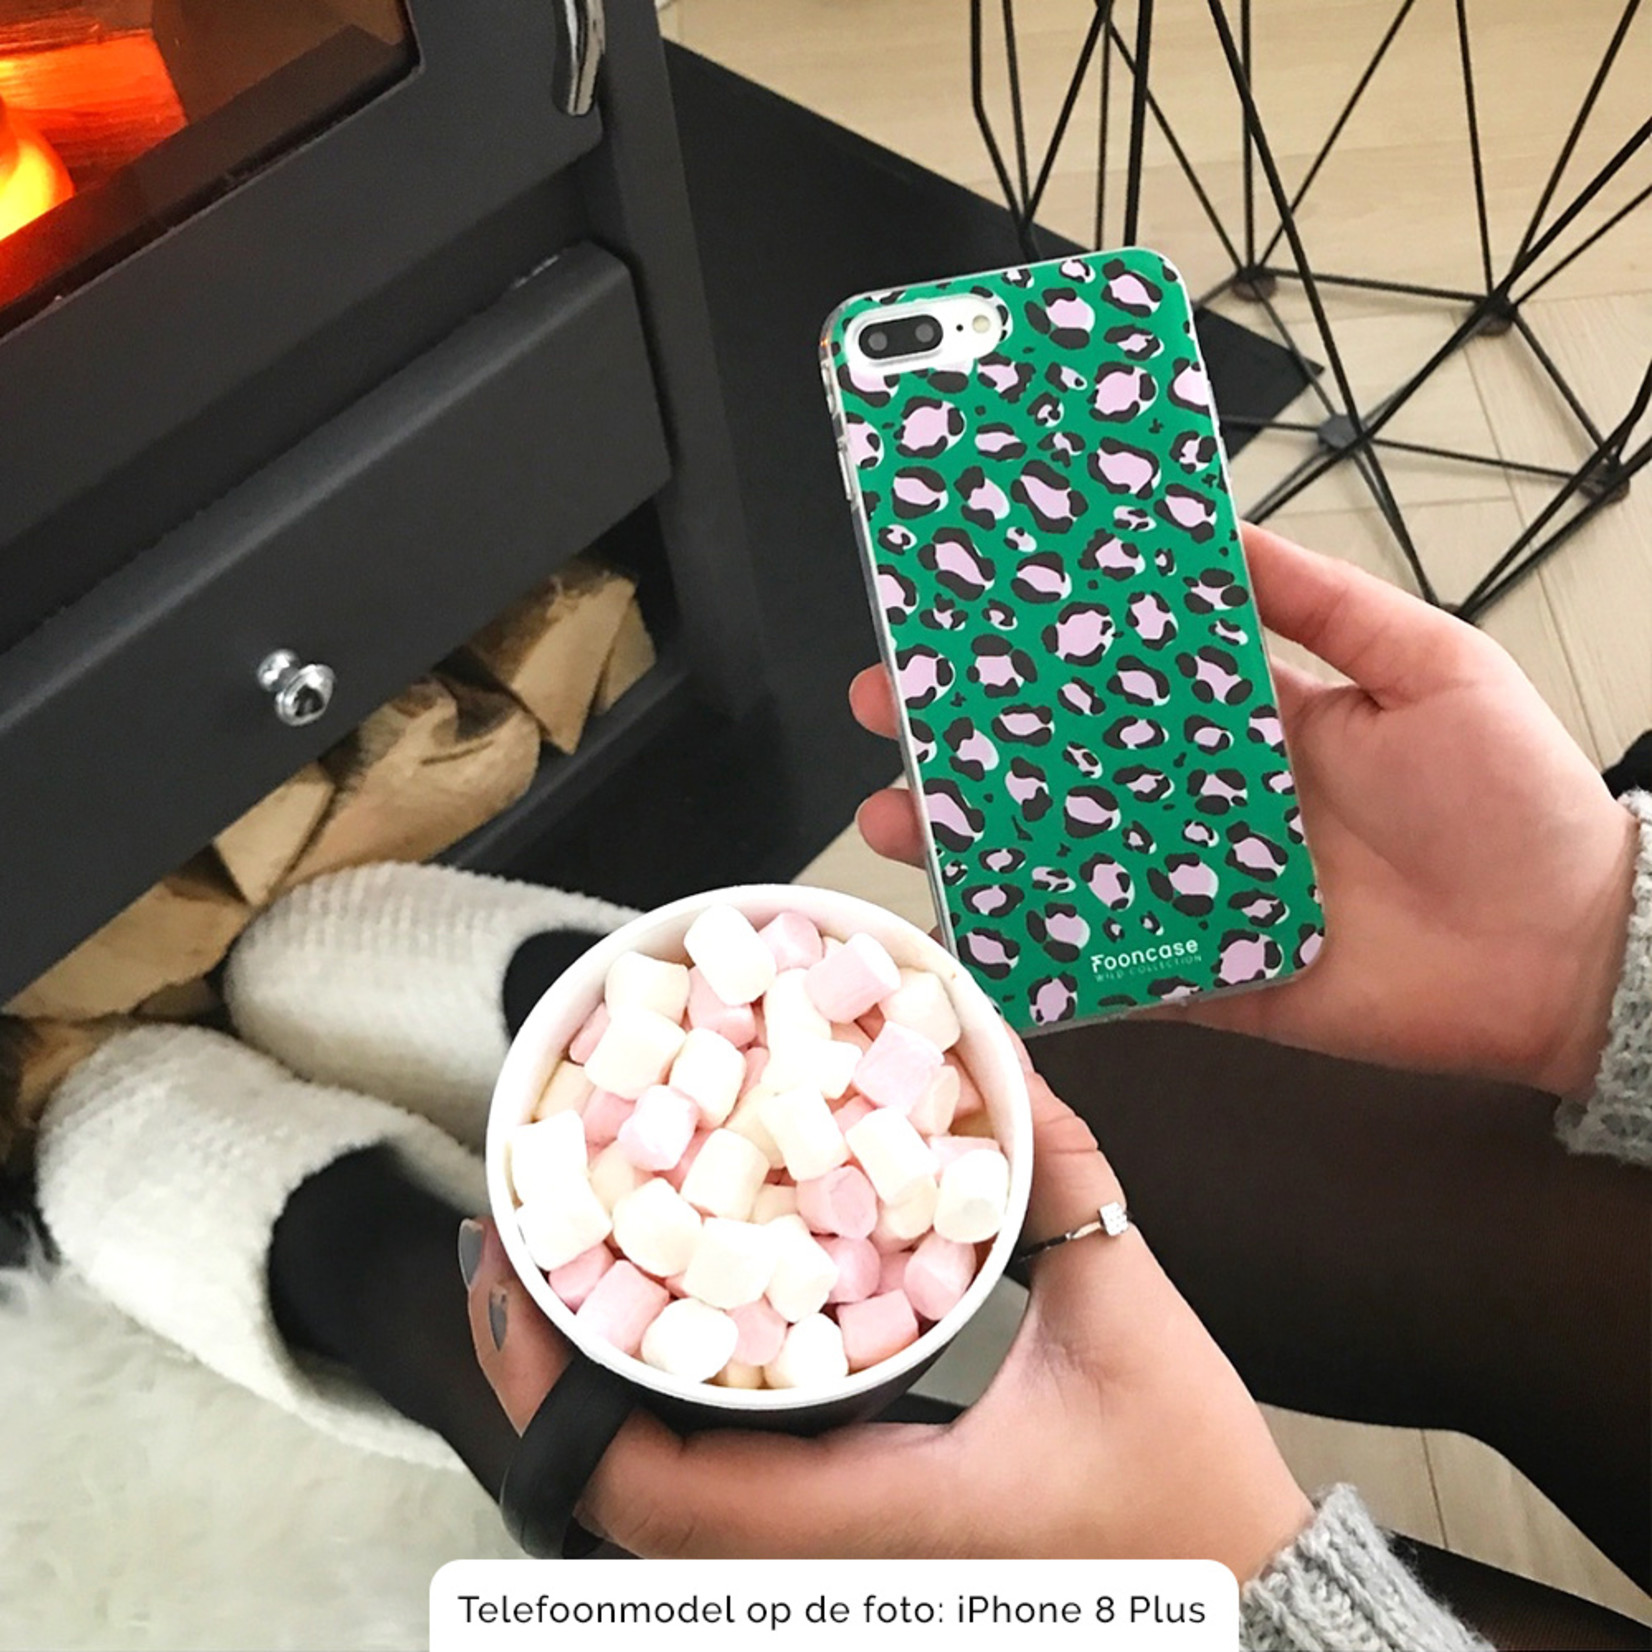 Samsung Galaxy A40 hoesje TPU Soft Case - Back Cover - WILD COLLECTION / Luipaard / Leopard print / Groen